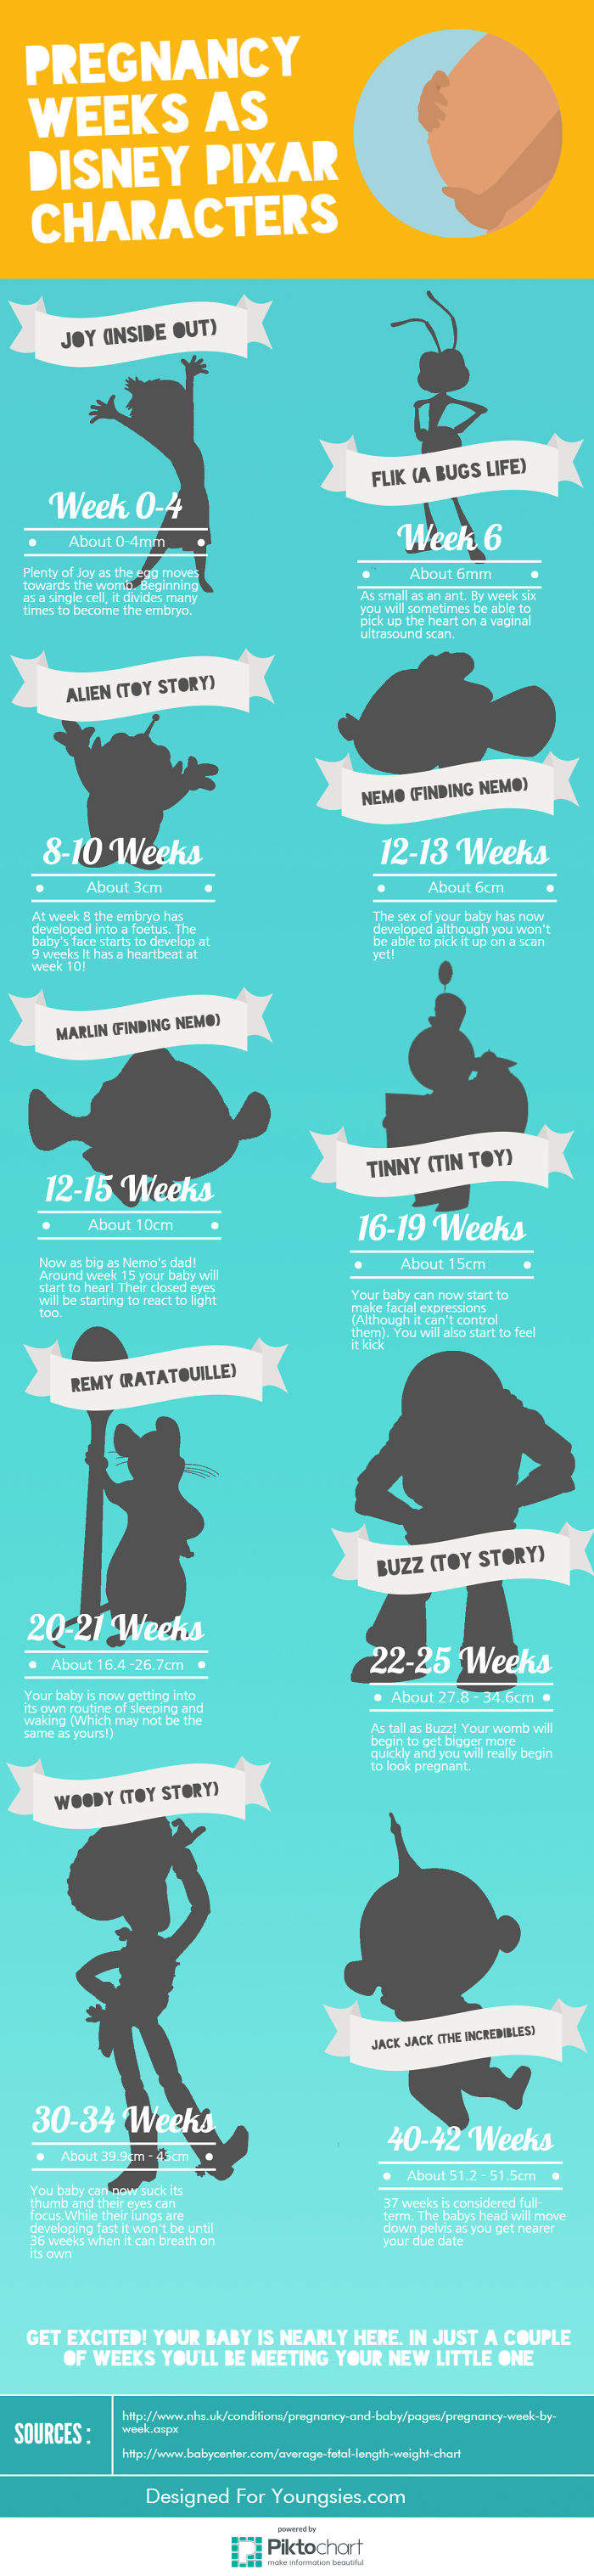 I Made An Infographic That Compares Pregnancy Week Sizes To Disney Pixar Characters